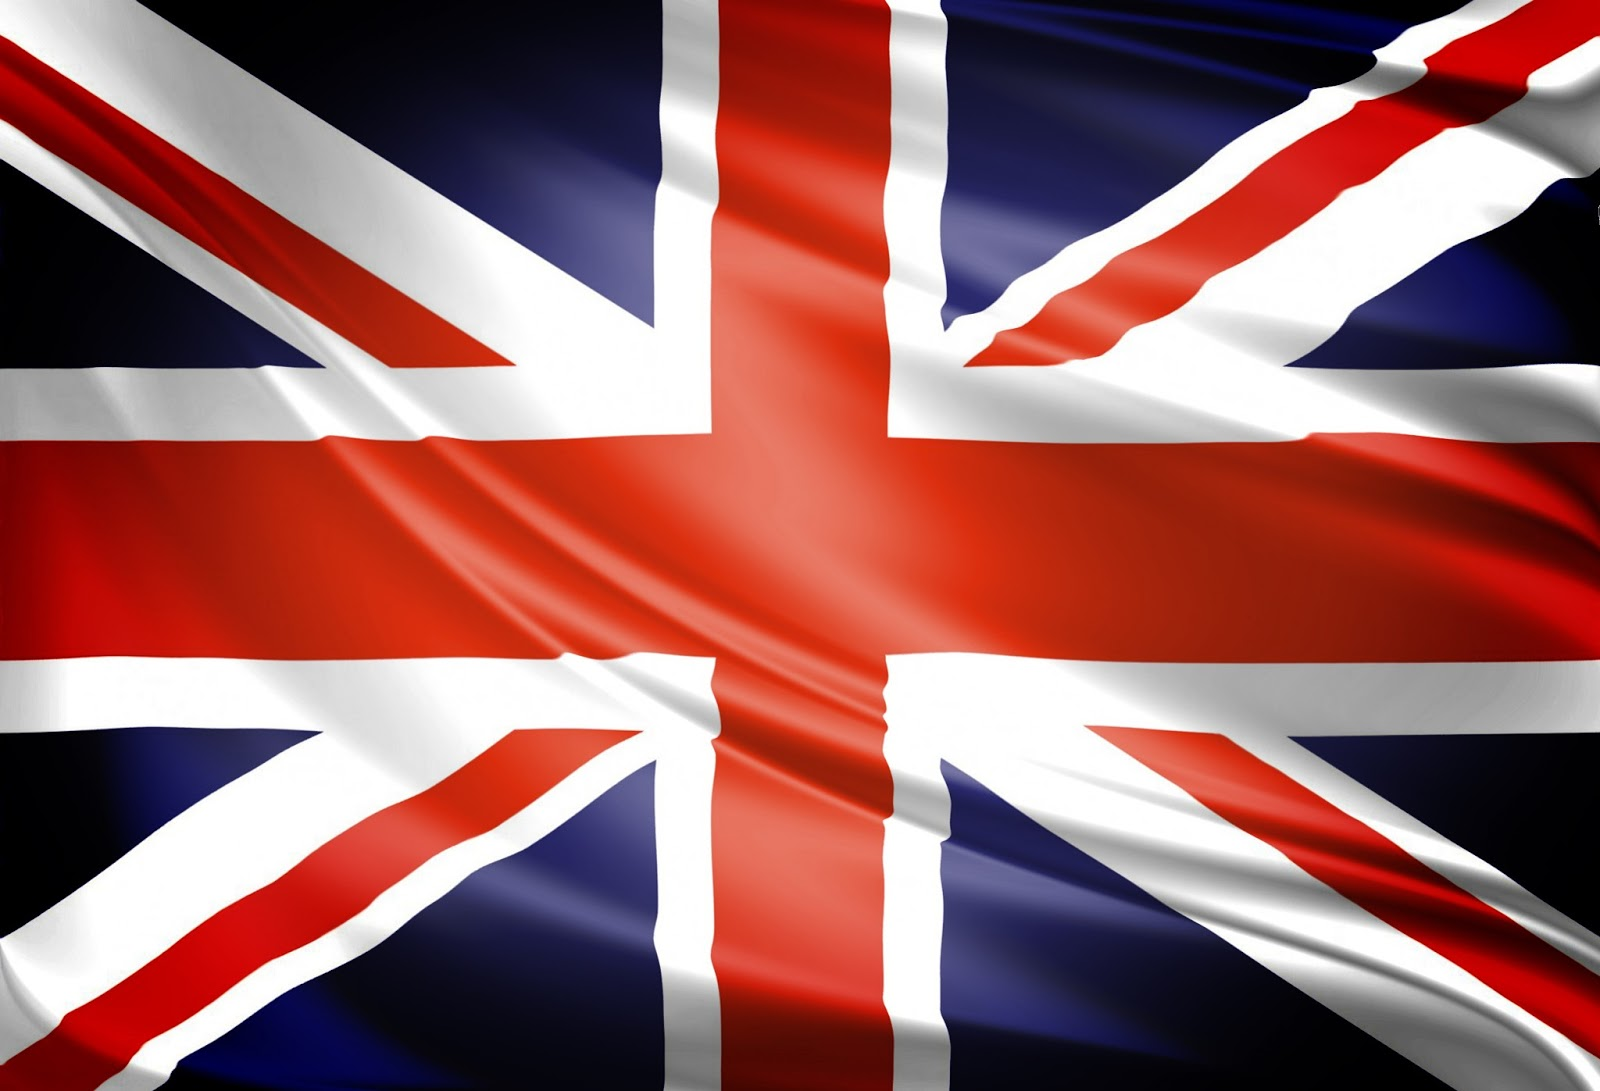 england flag hd wallpapers top desktop image of uk flag 1600x1091